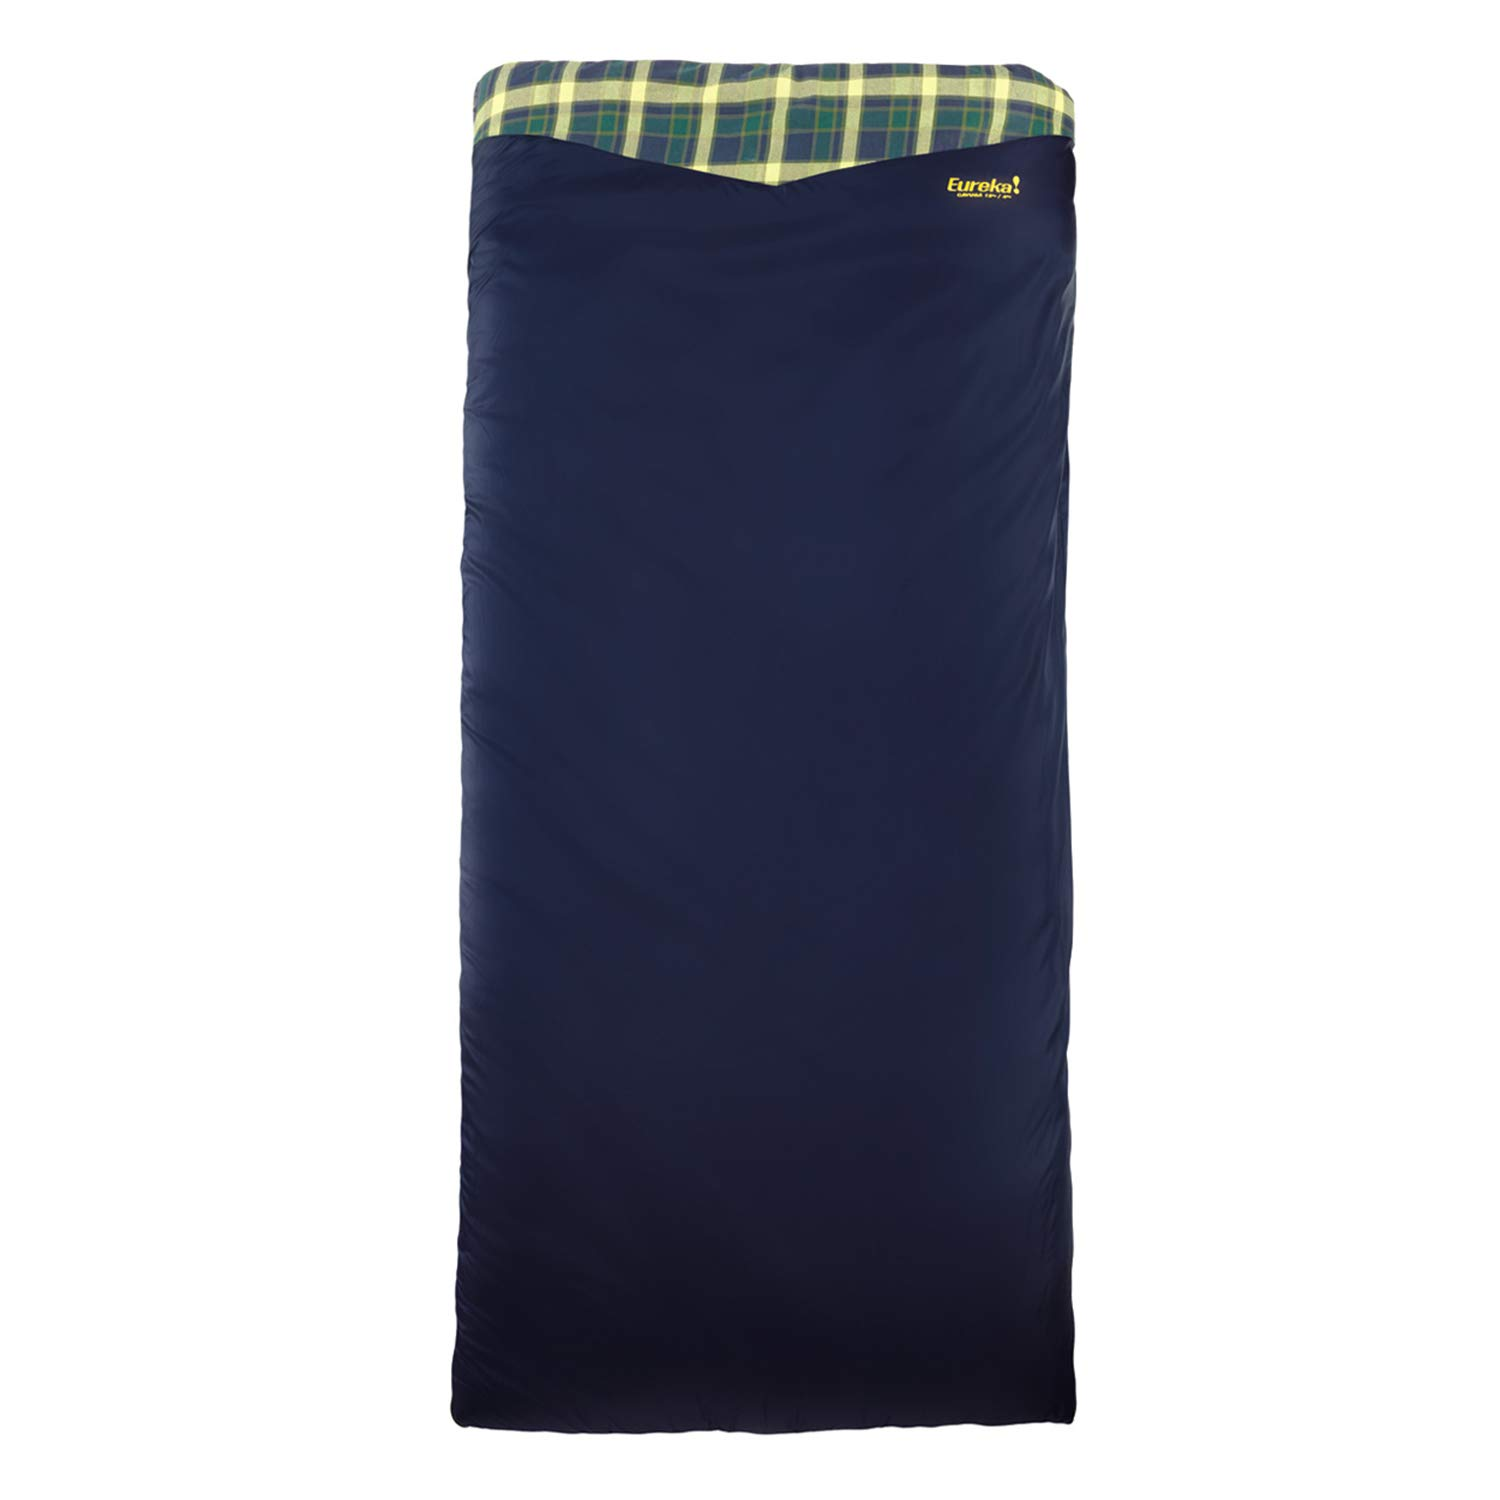 Eureka Cayuga 45 Degree Sleeping Bag